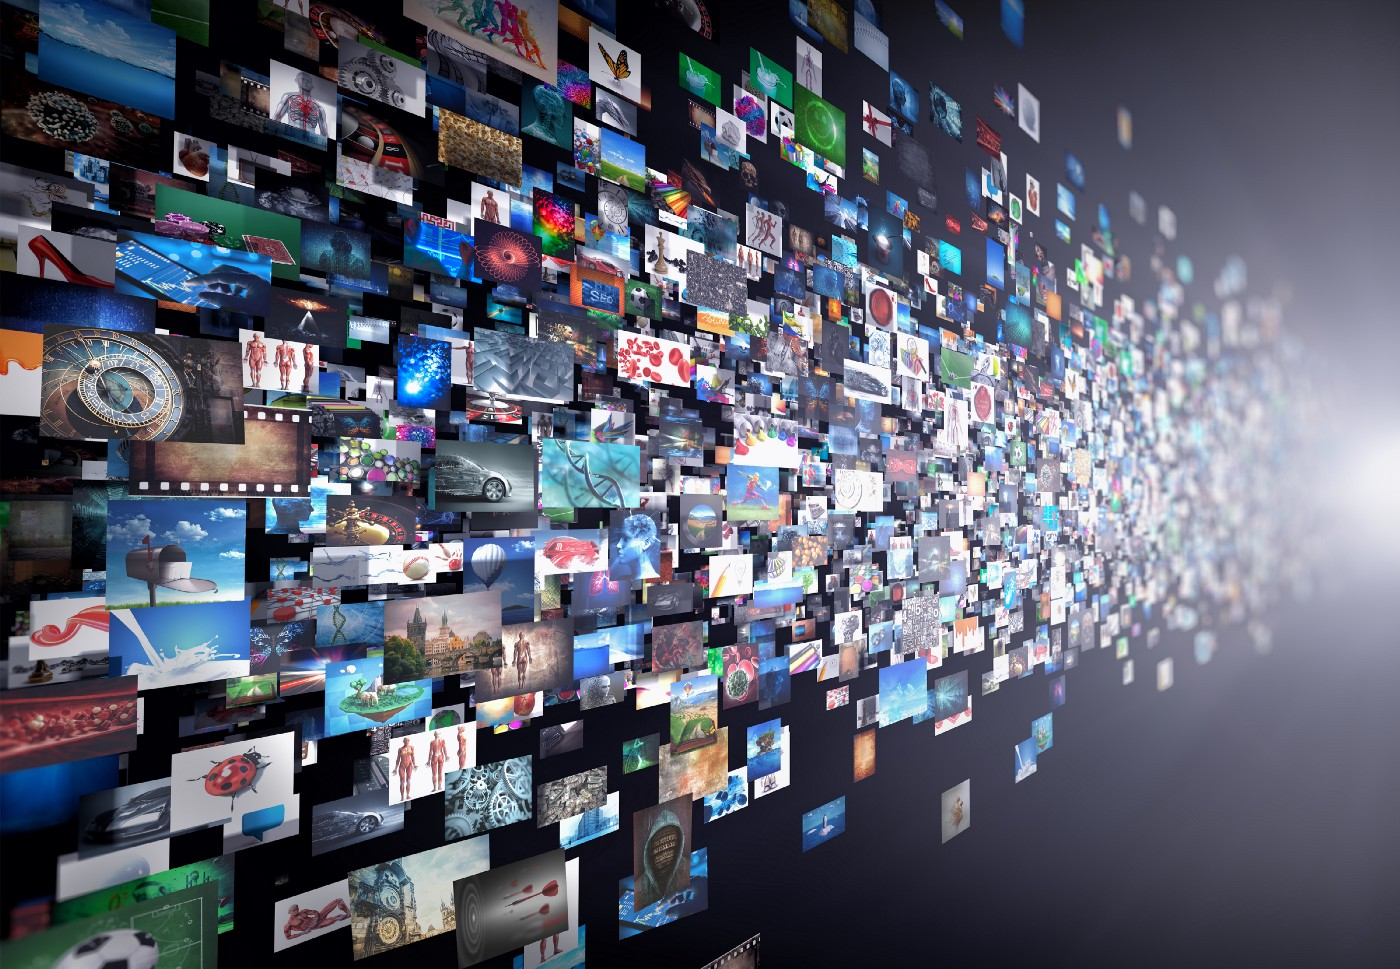 3D illustration of a data stream of movies and TV shows being watched with a VPN.